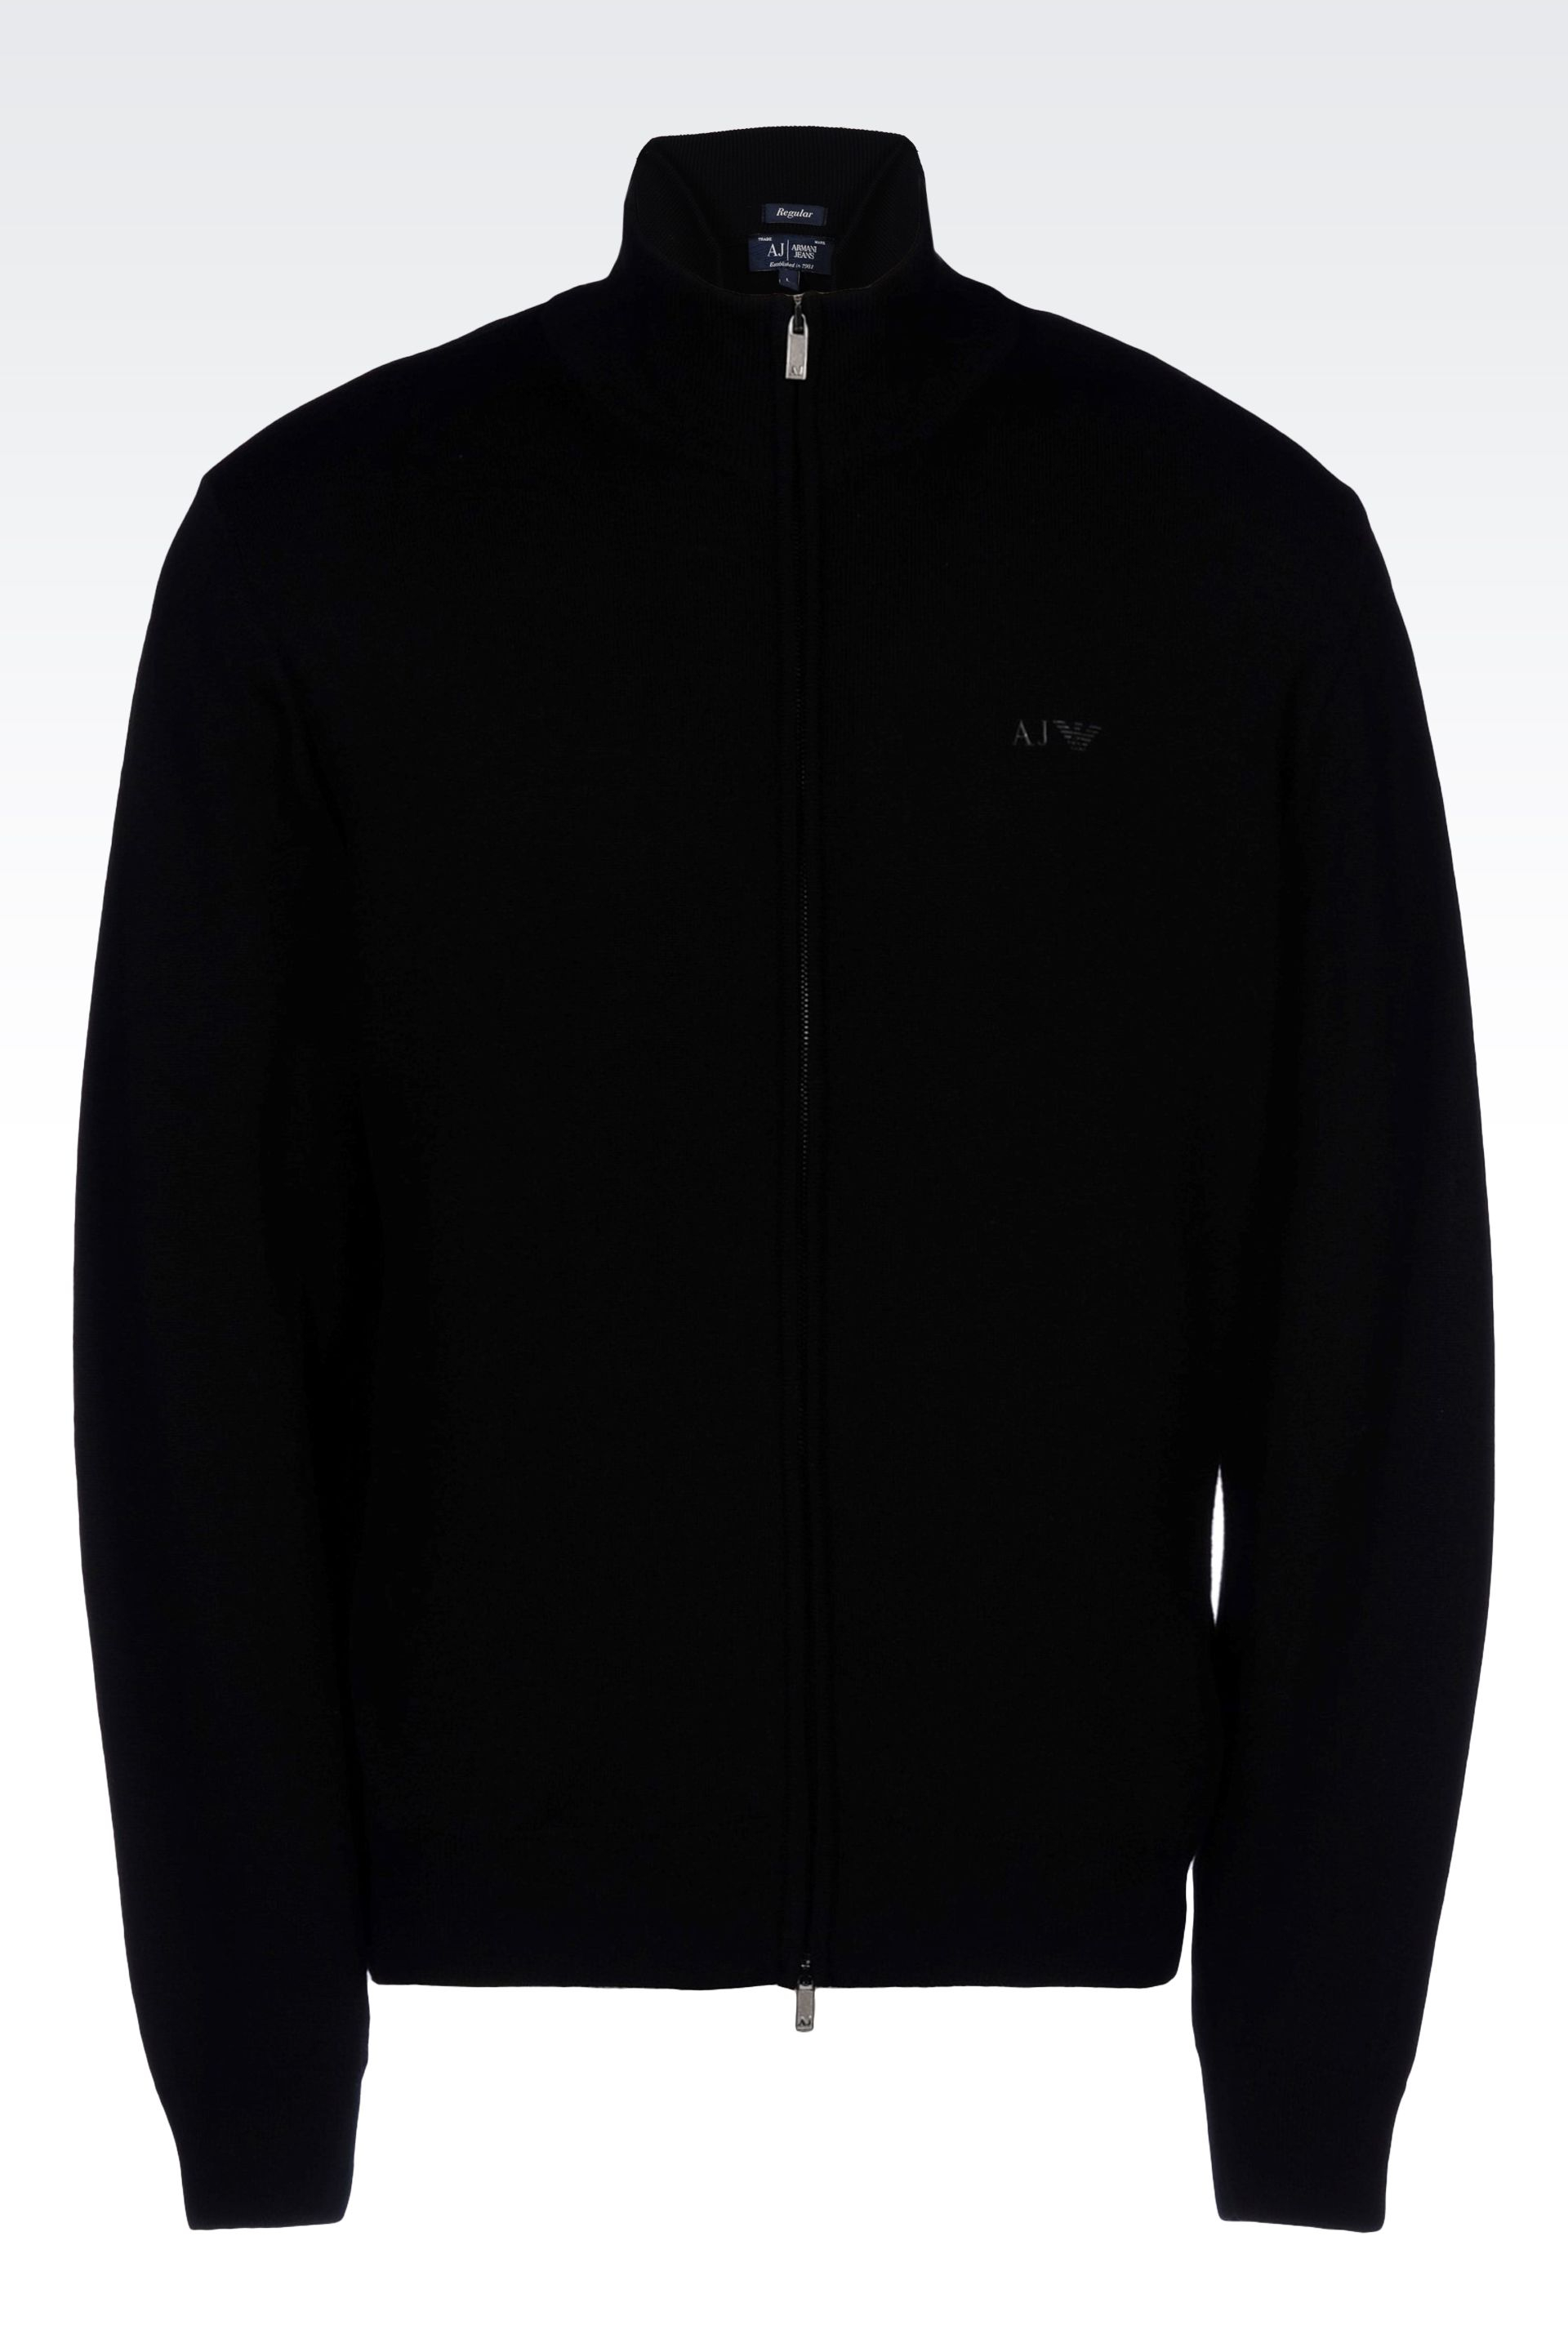 Armani Jeans Full Zip Cardigan In Virgin Wool In Black For Men Lyst